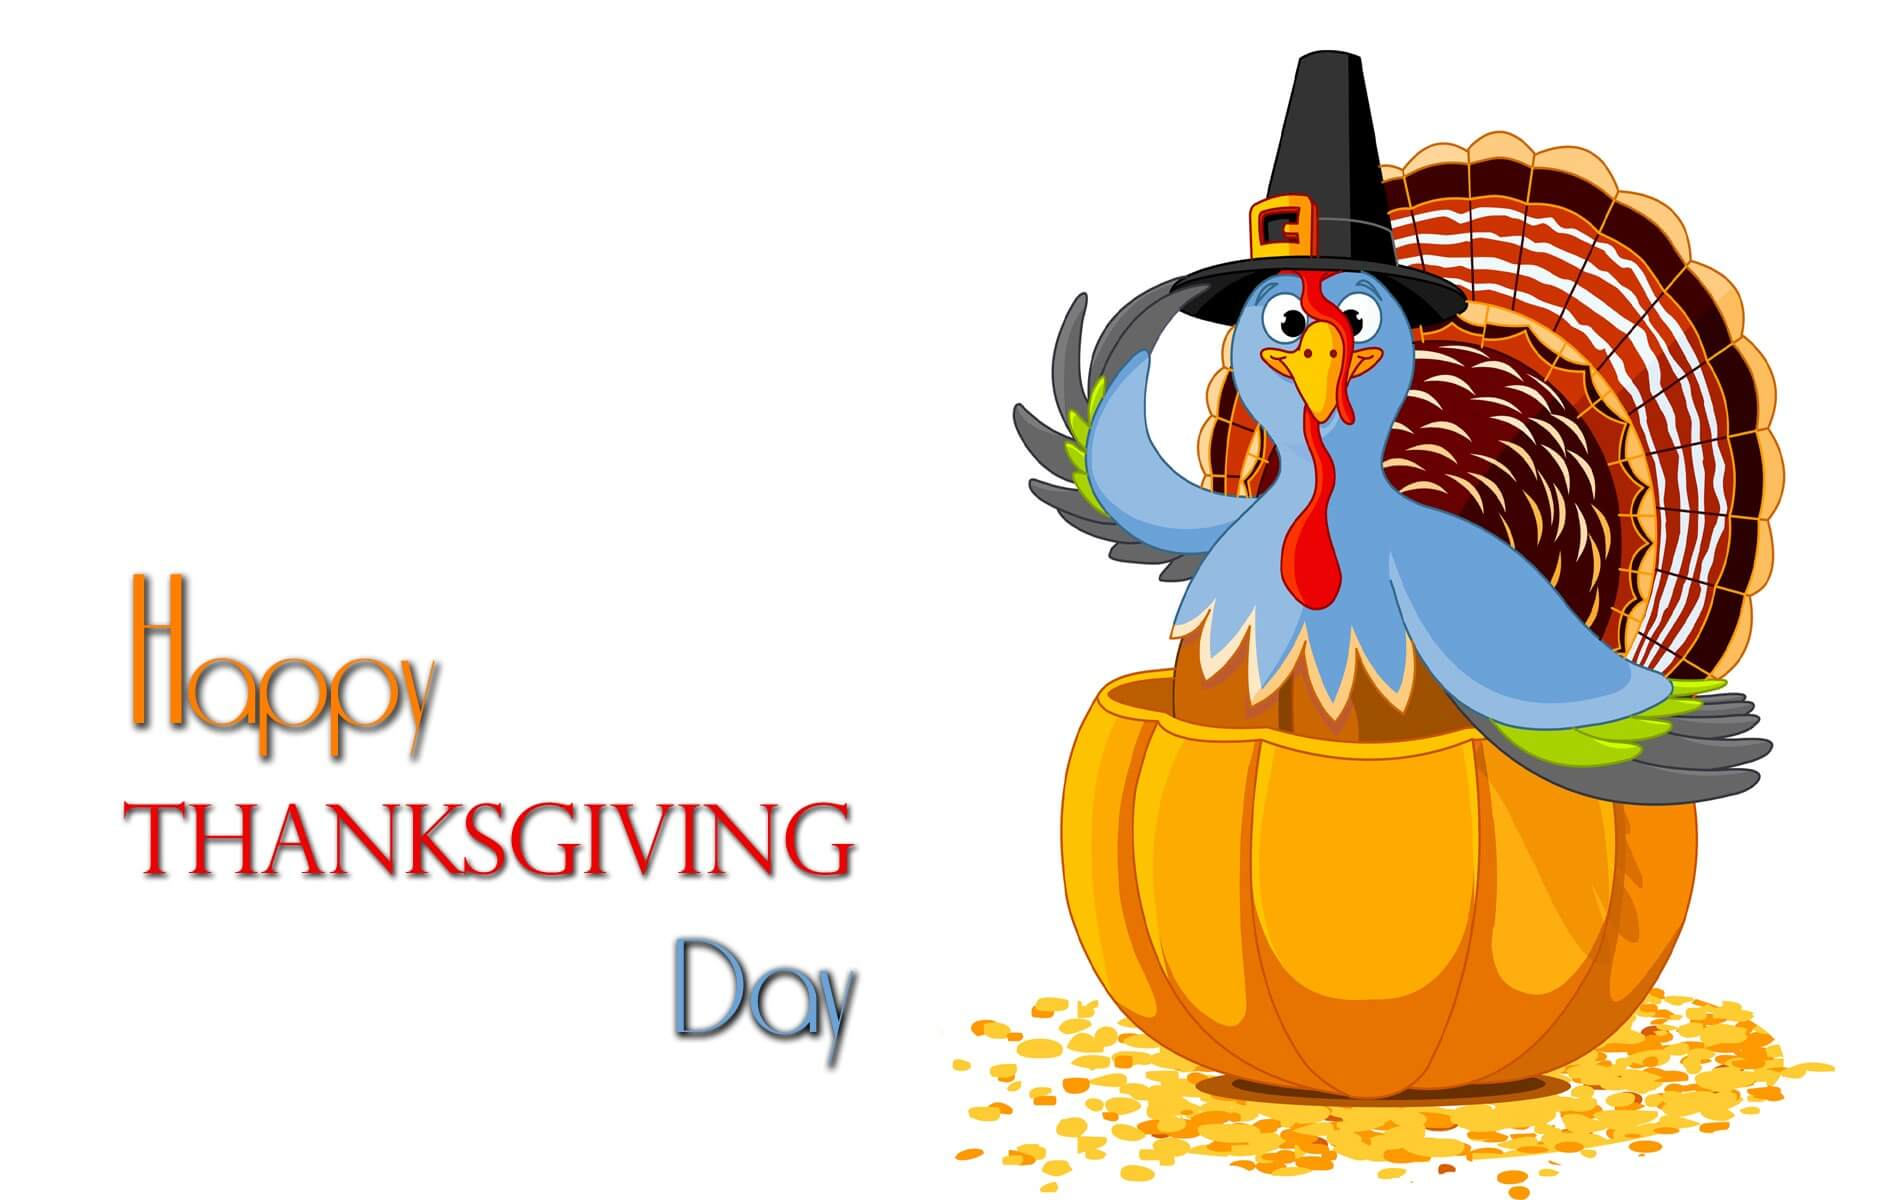 happy thanksgiving day image